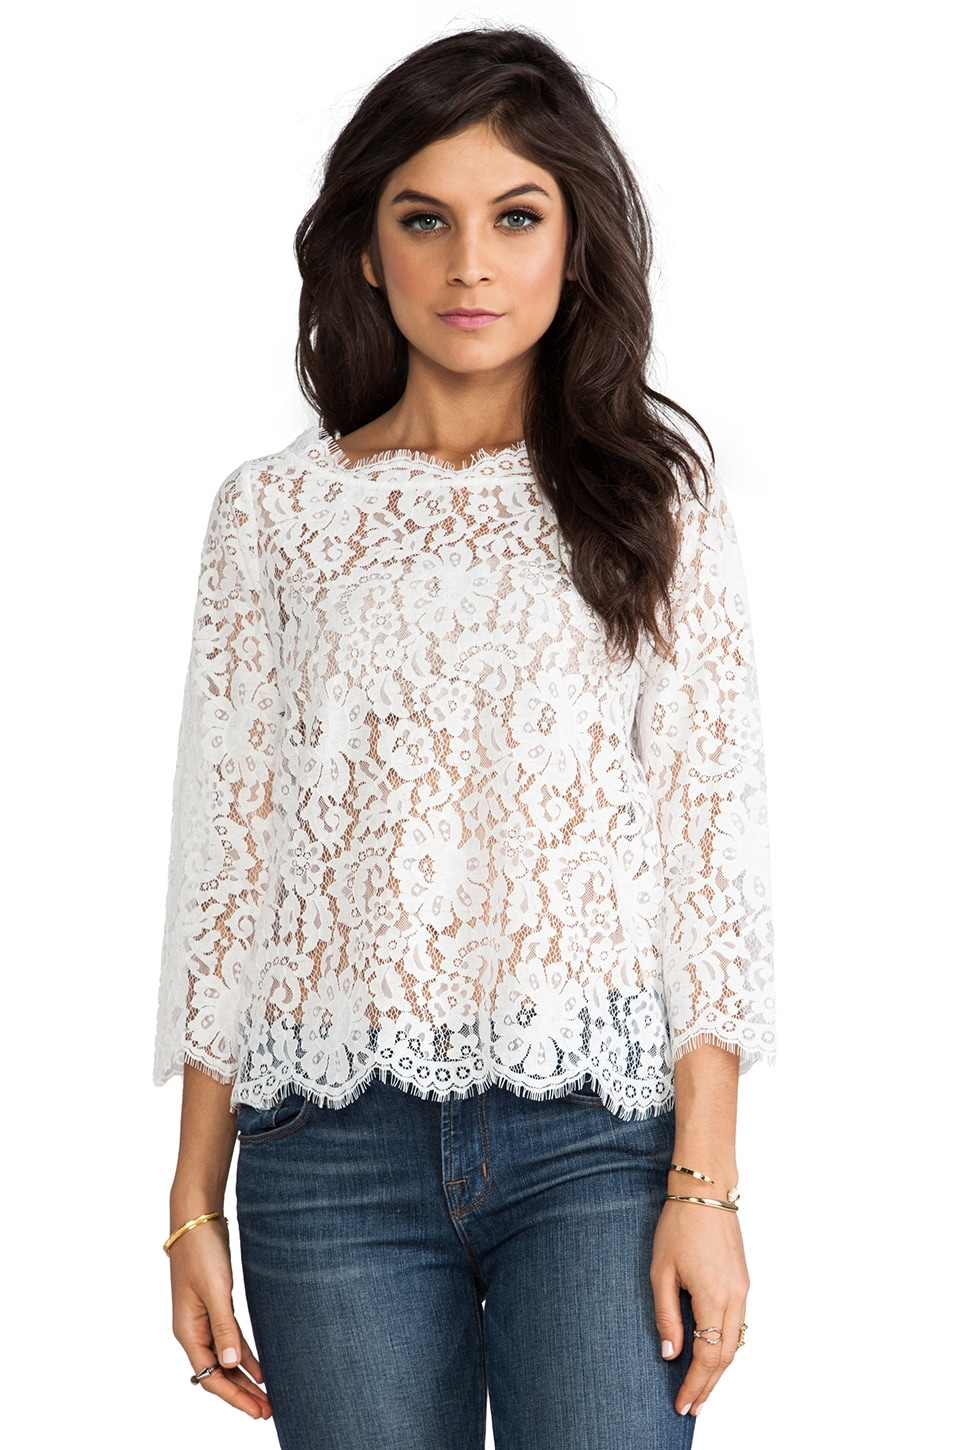 Joie Allover Lace Elvia C Top in Porcelain